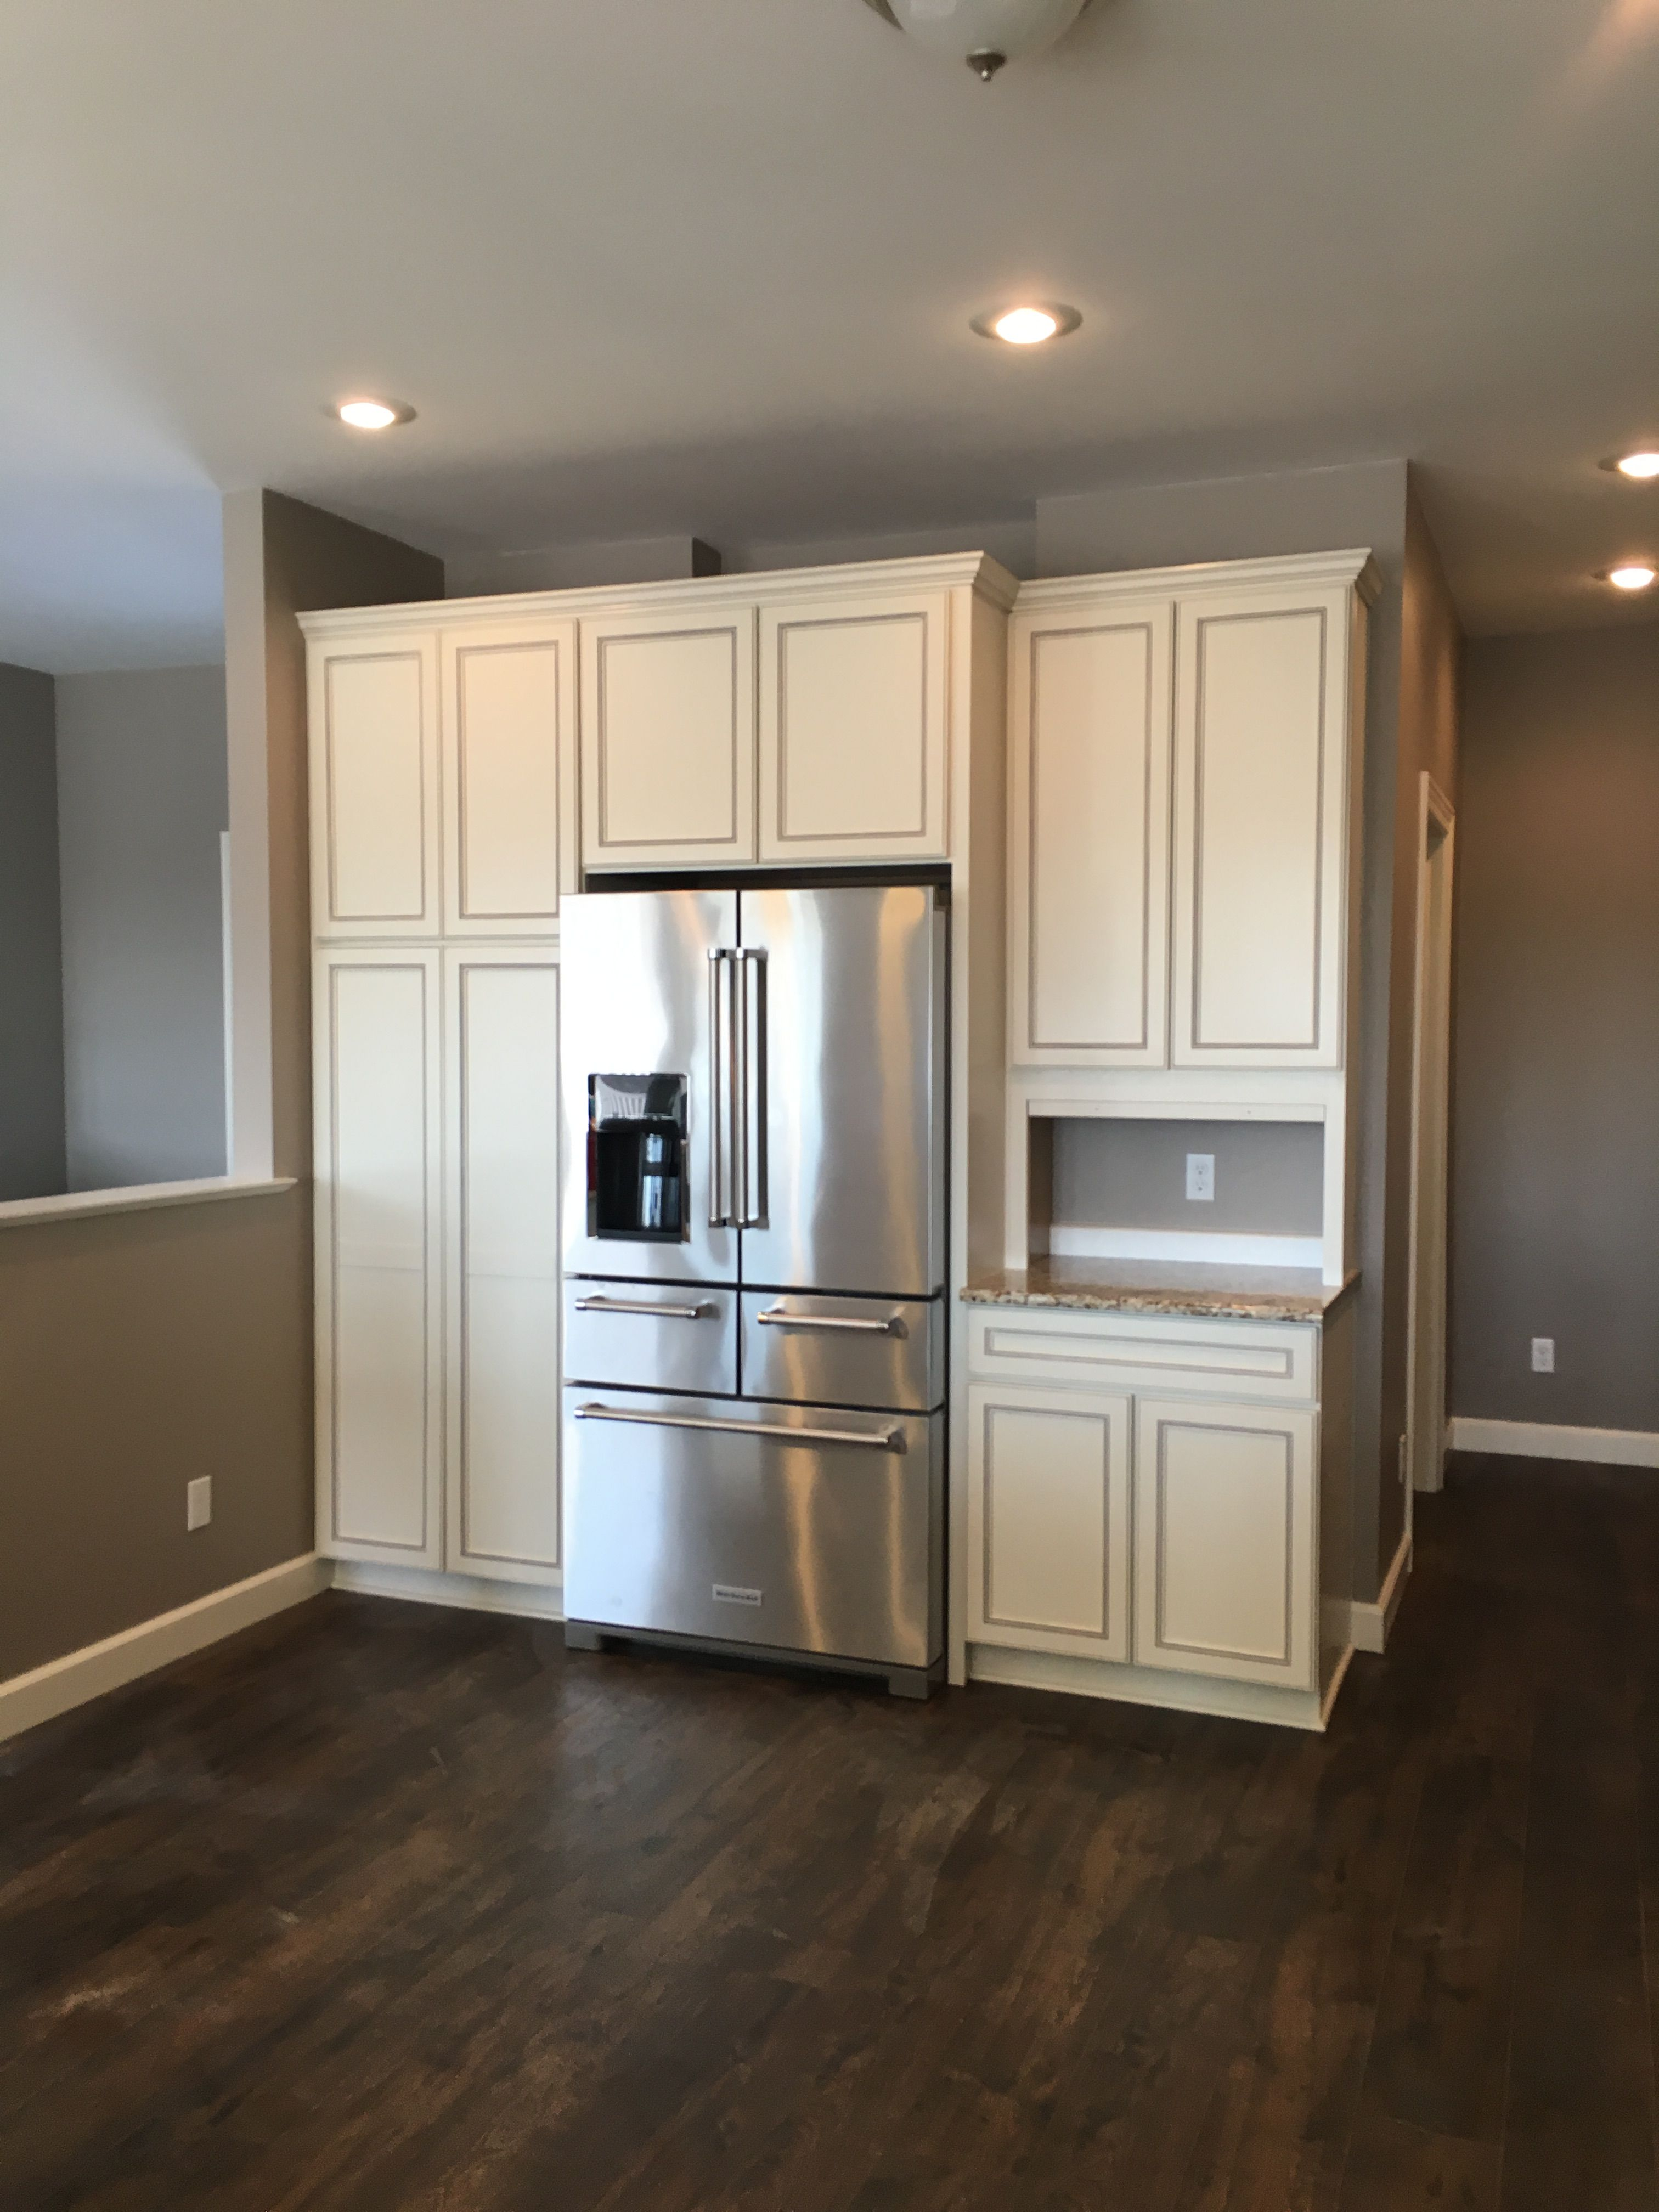 White Kitchen Cabinets With Dark Hardwood Floors Beautiful Tall White Staggered Cabinets With Stainless